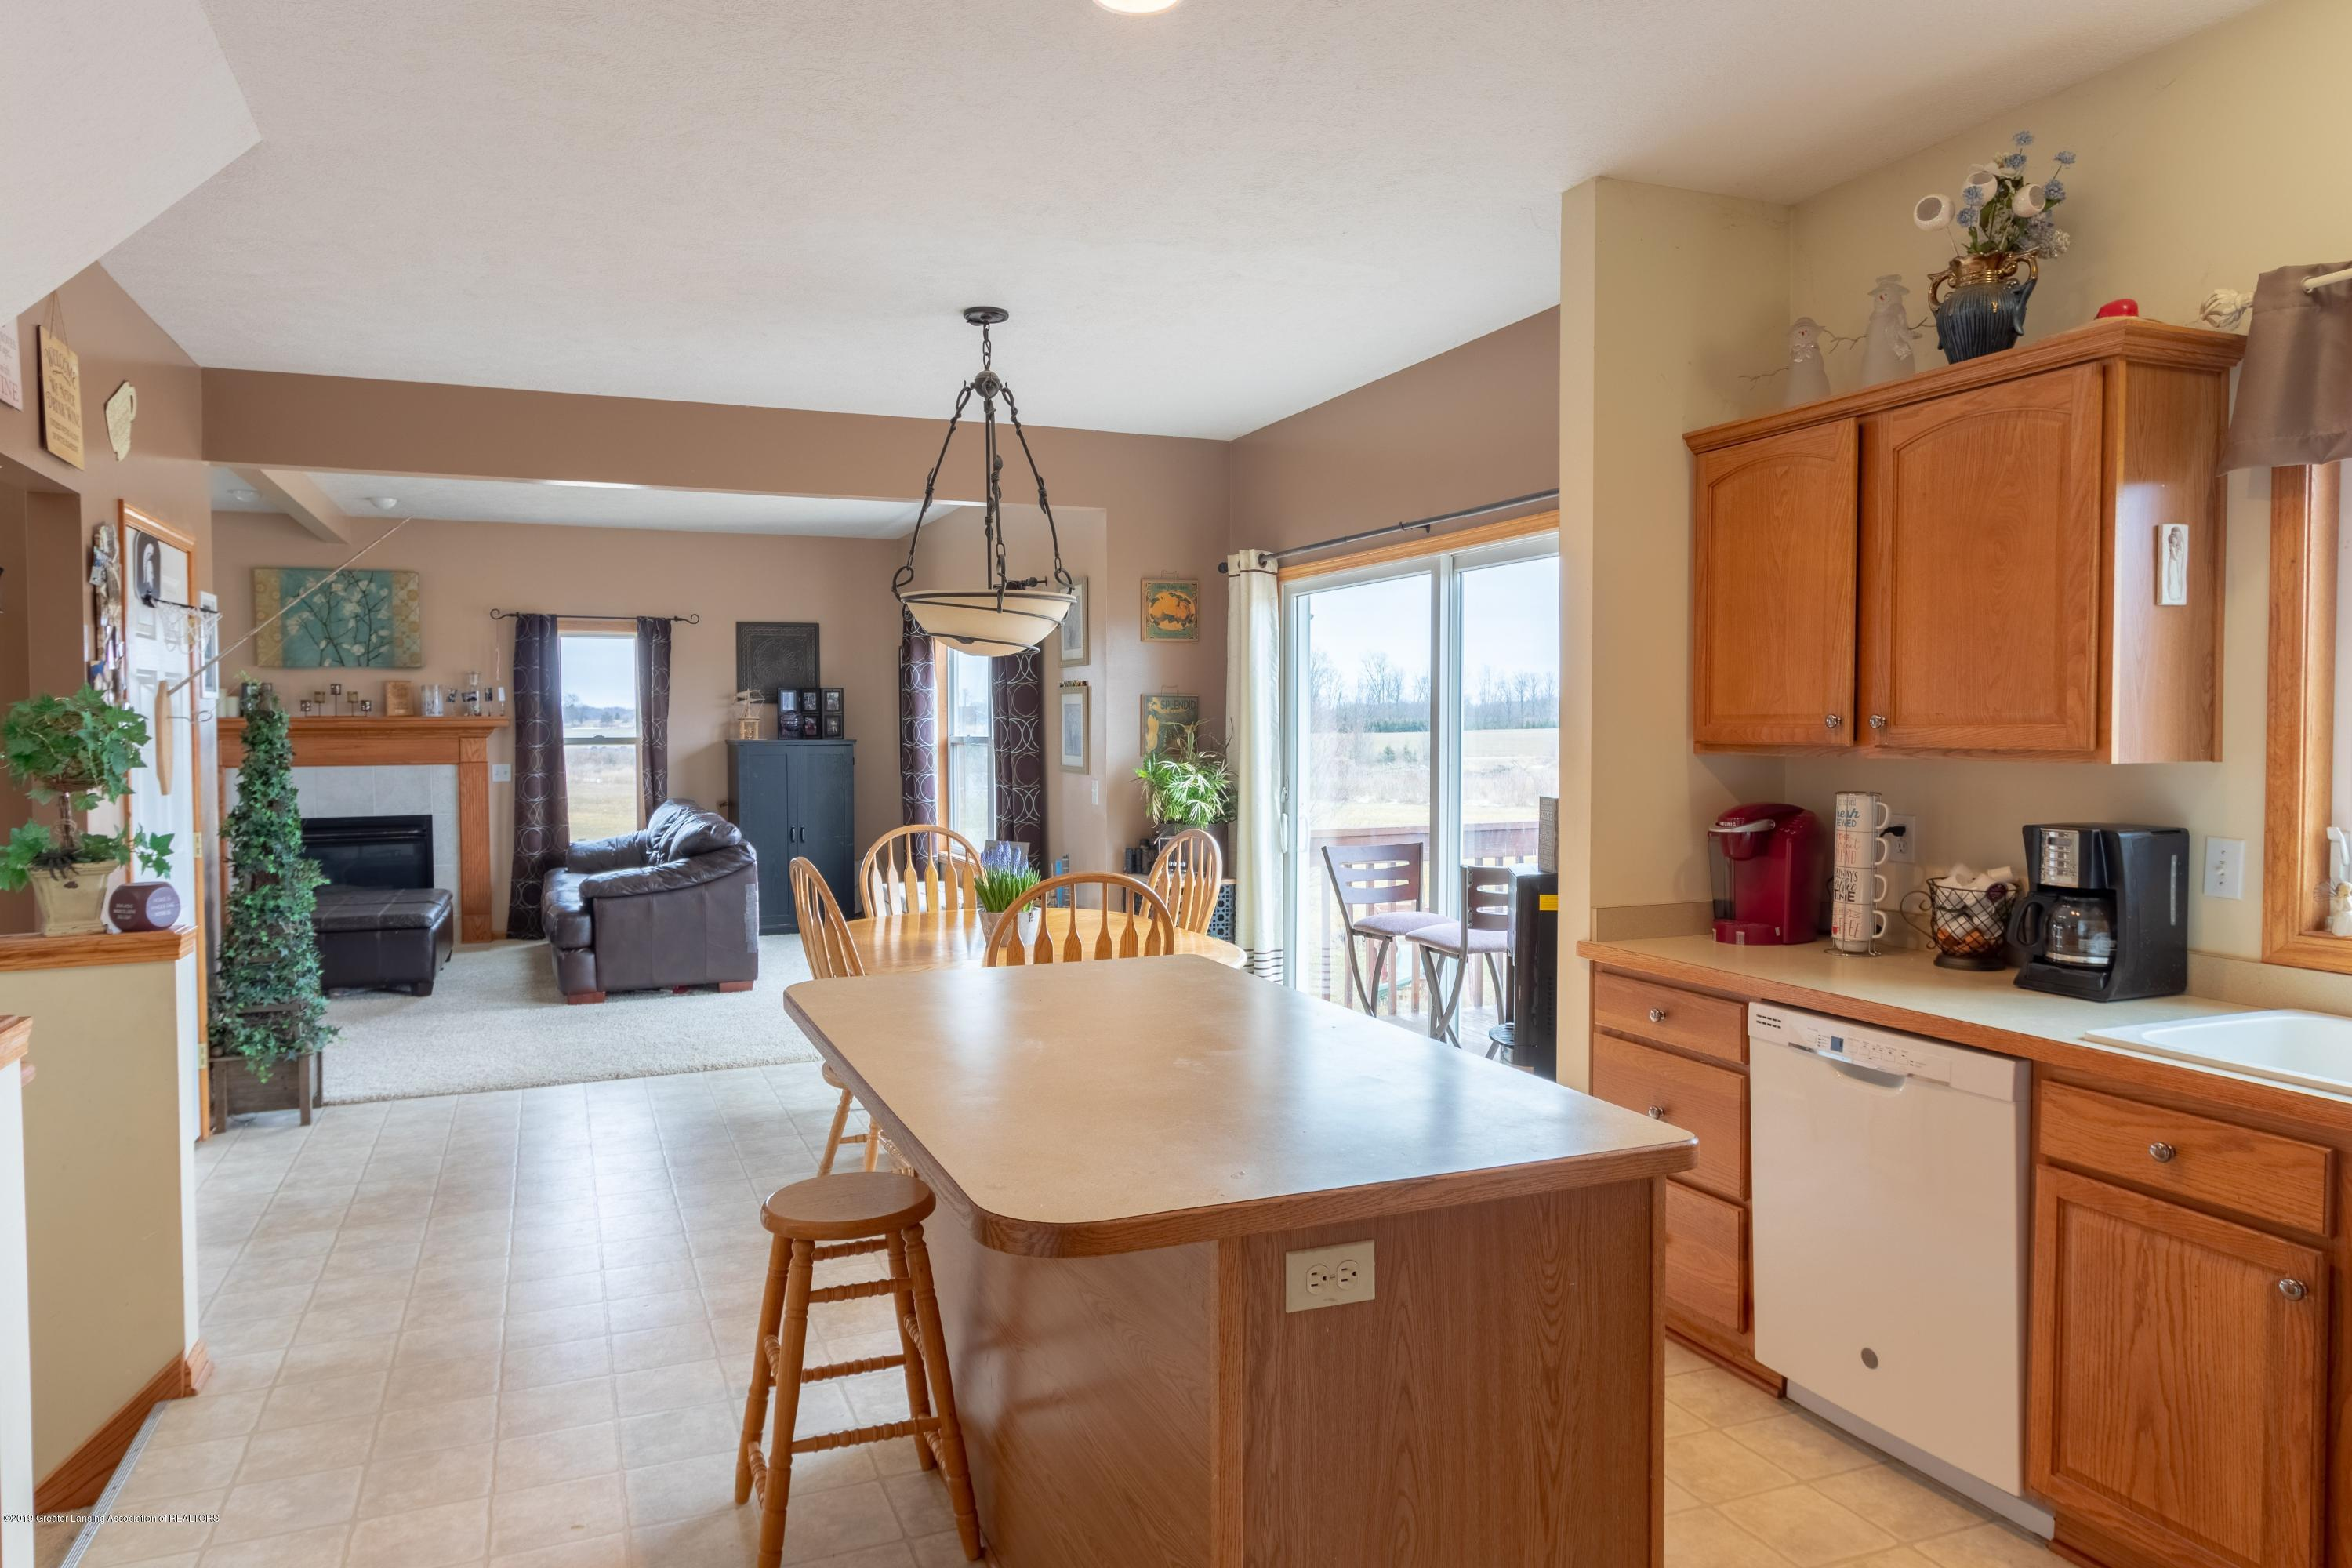 6121 W Centerline Rd - Kitchen - 6